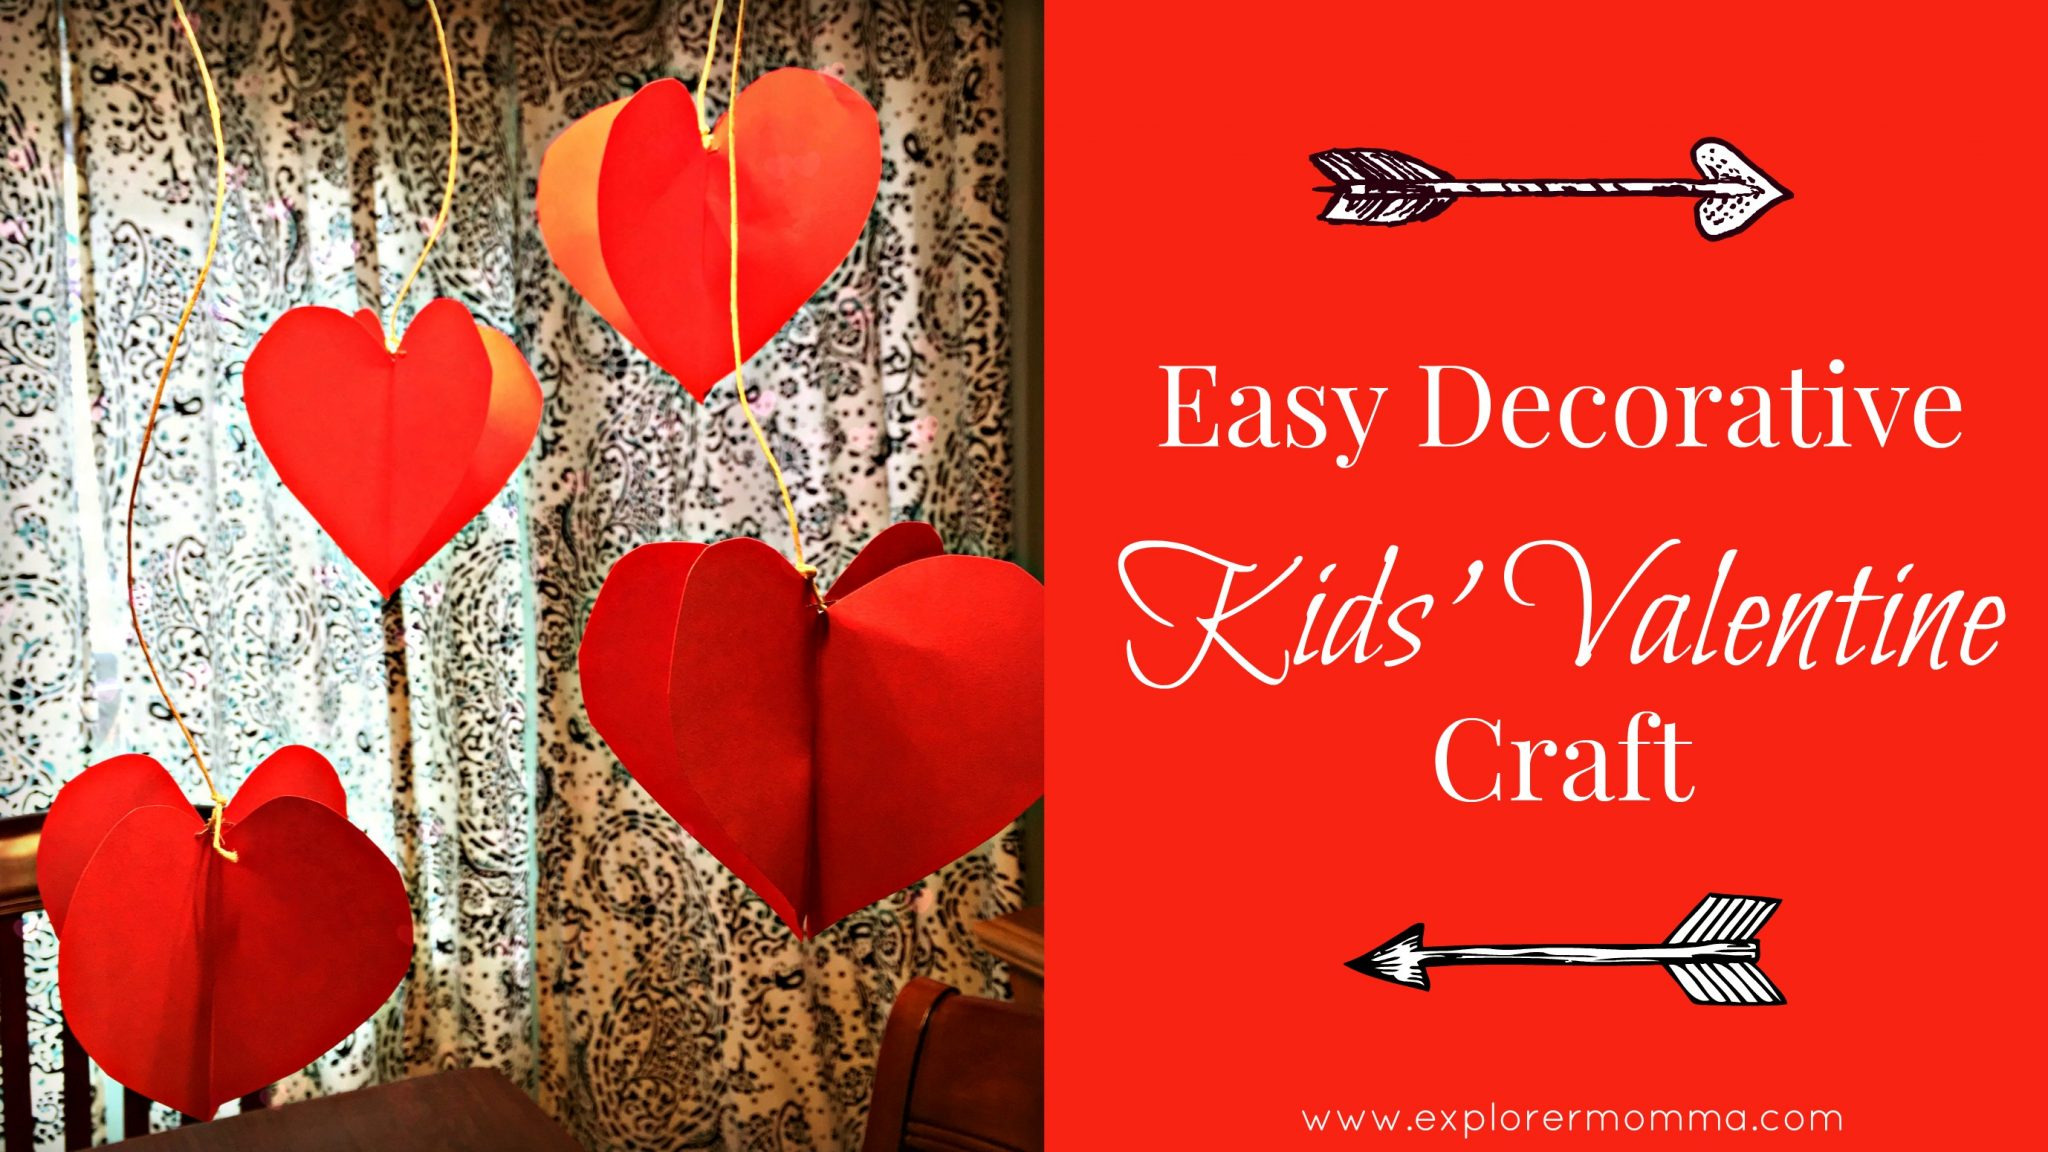 Kids' Valentine craft feature